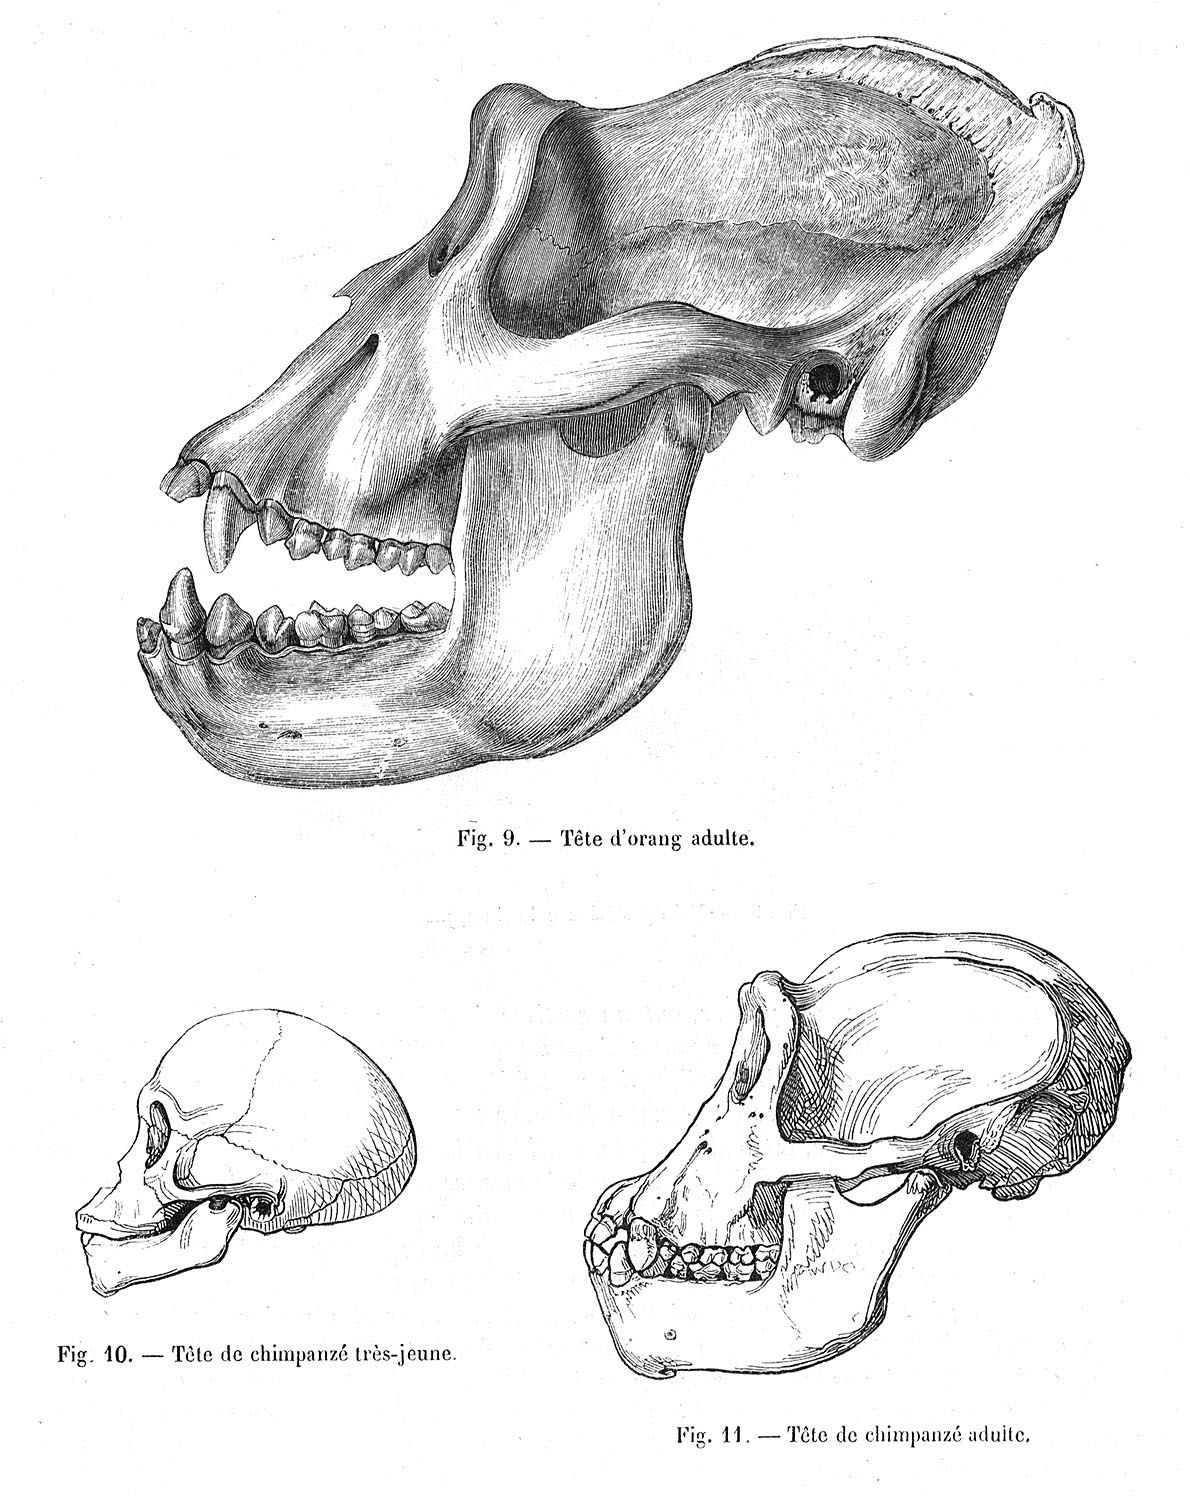 Fig. 9--Adult Orangutan skull; Fig. 10--Very young Chimpanzee skull; Fig. 11--Adult Chimpanzee skull.